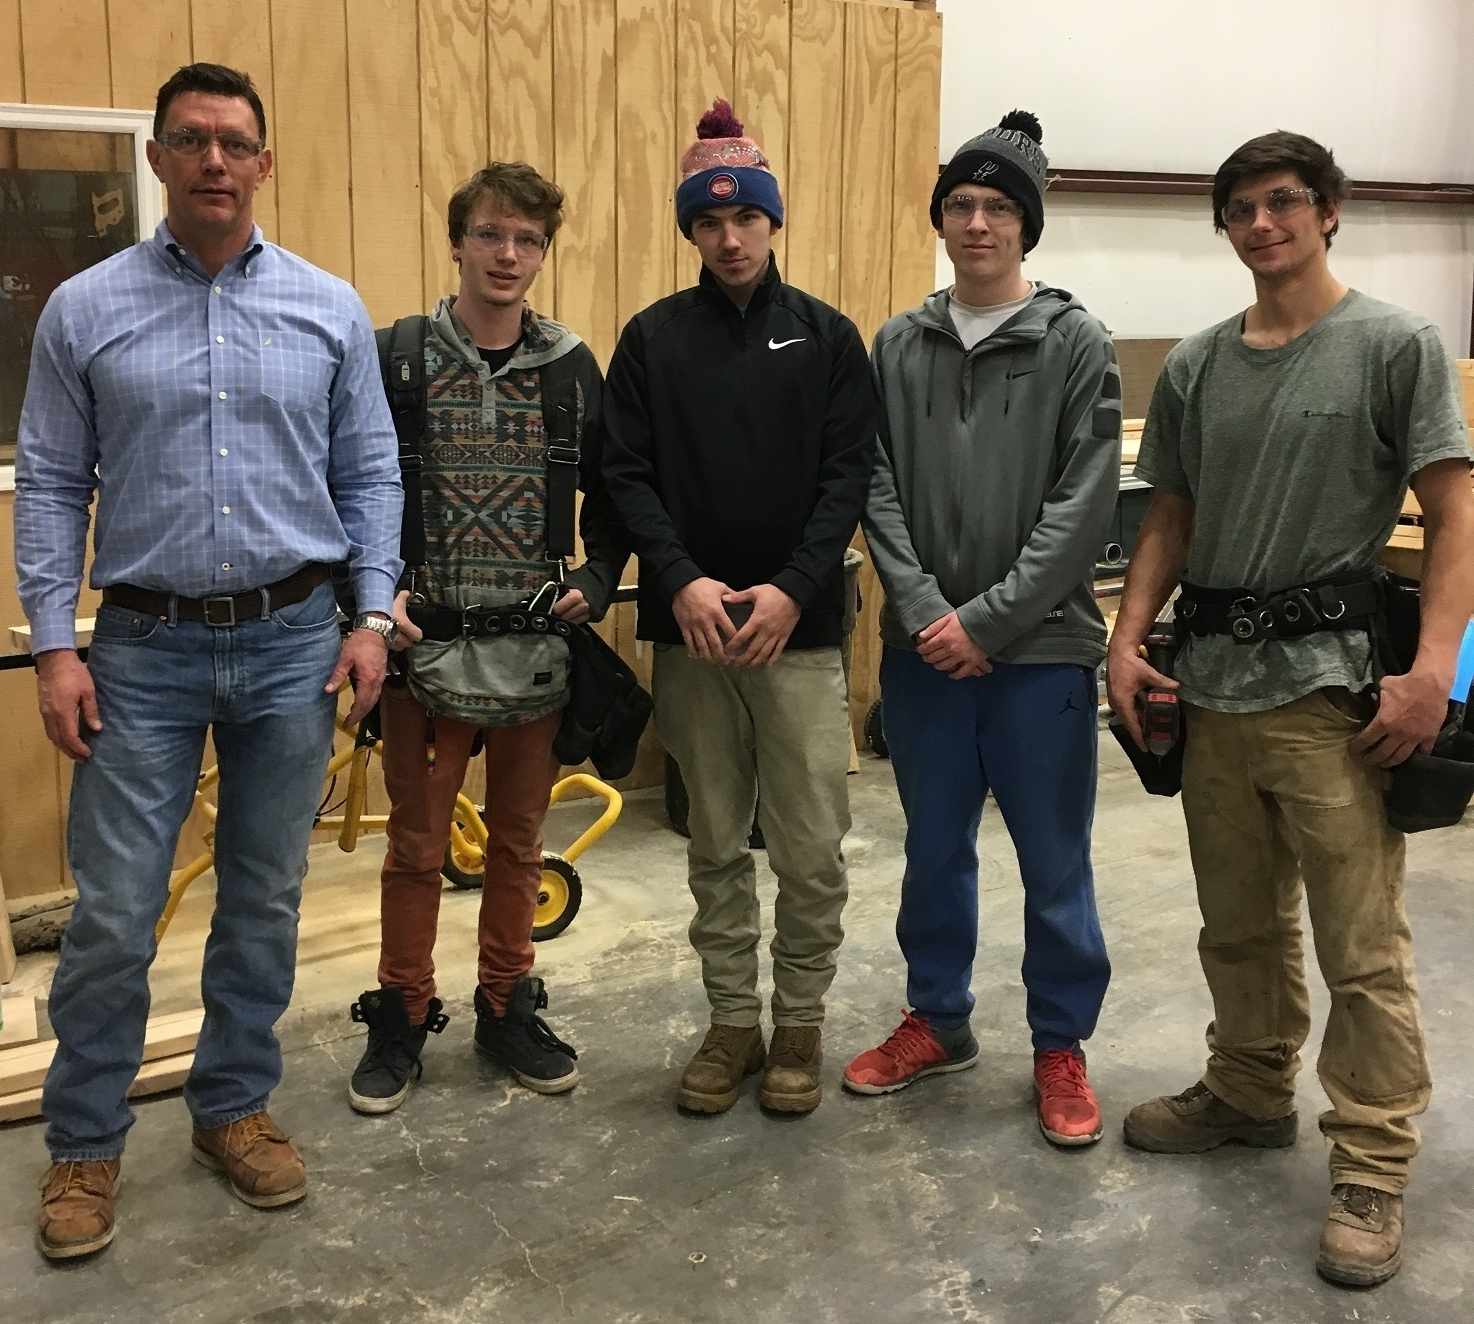 Pictured is Ken Provost with several IAI students (now graduates!).